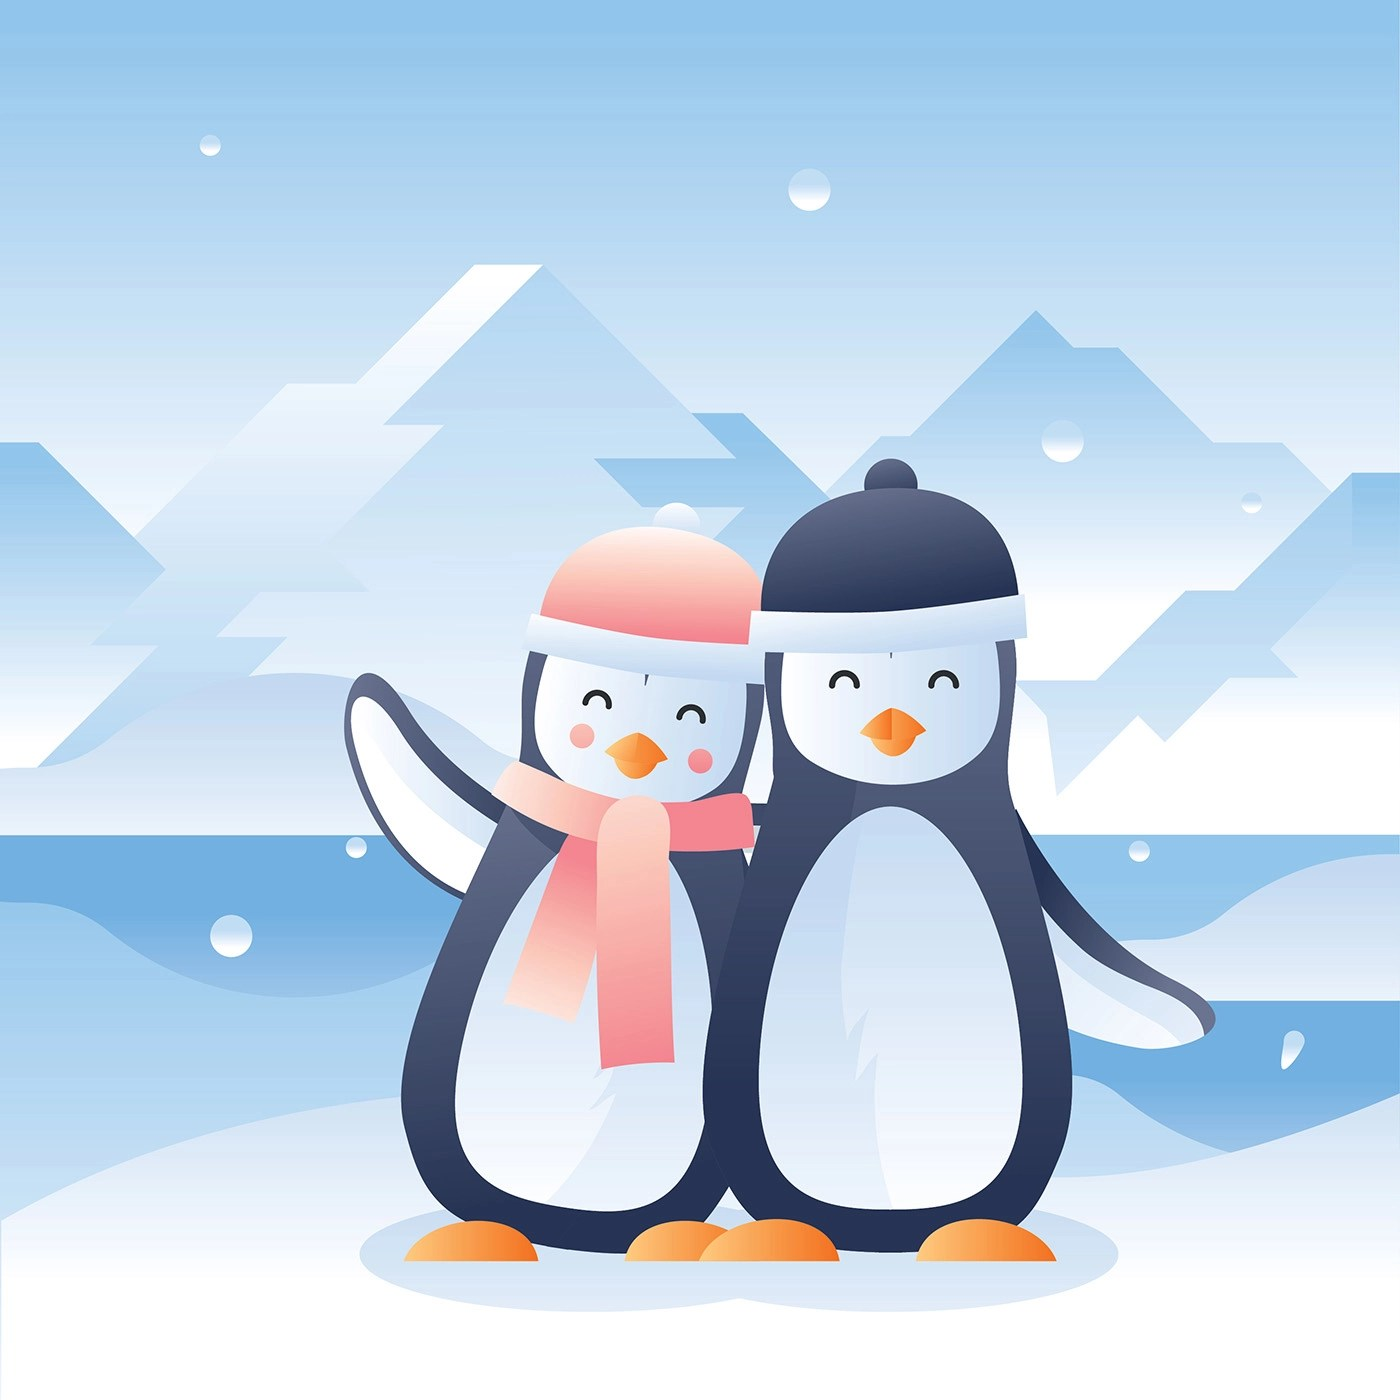 Free Snow Falling Animated Wallpaper Penguins In Love Vector Download Free Vector Art Stock